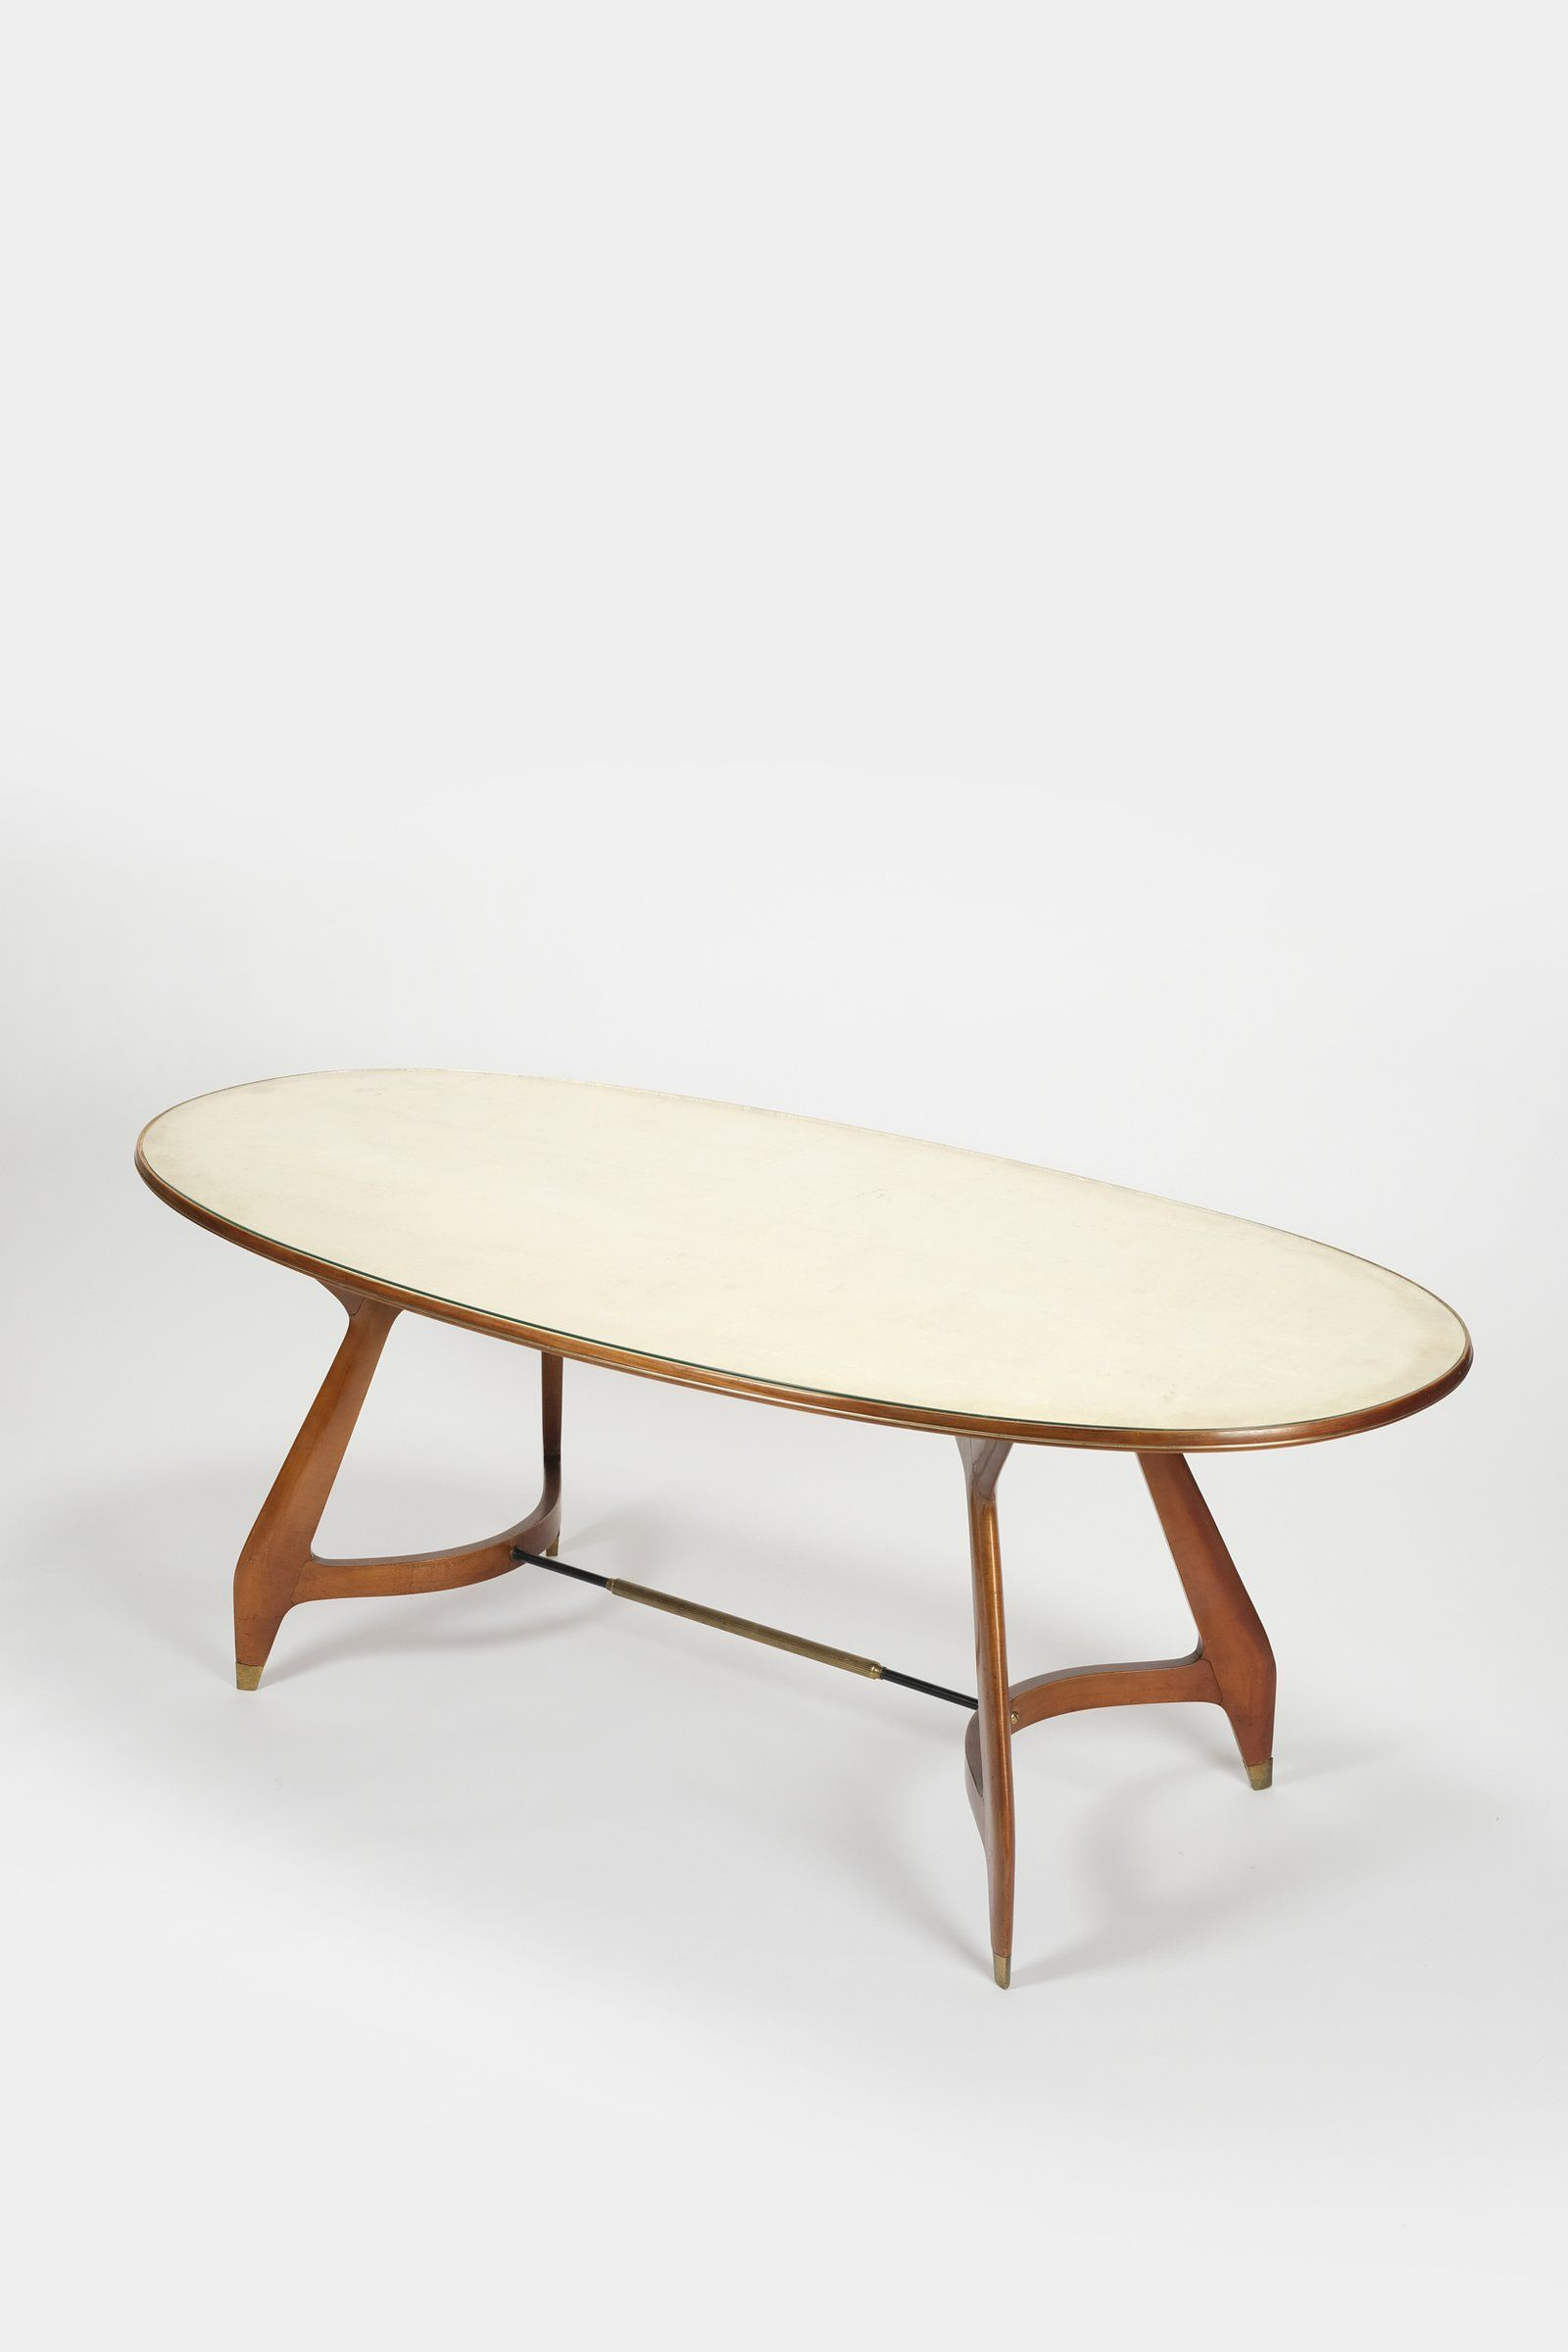 170 Tables Ideen In 2021 Clubtisch Tisch Gio Ponti